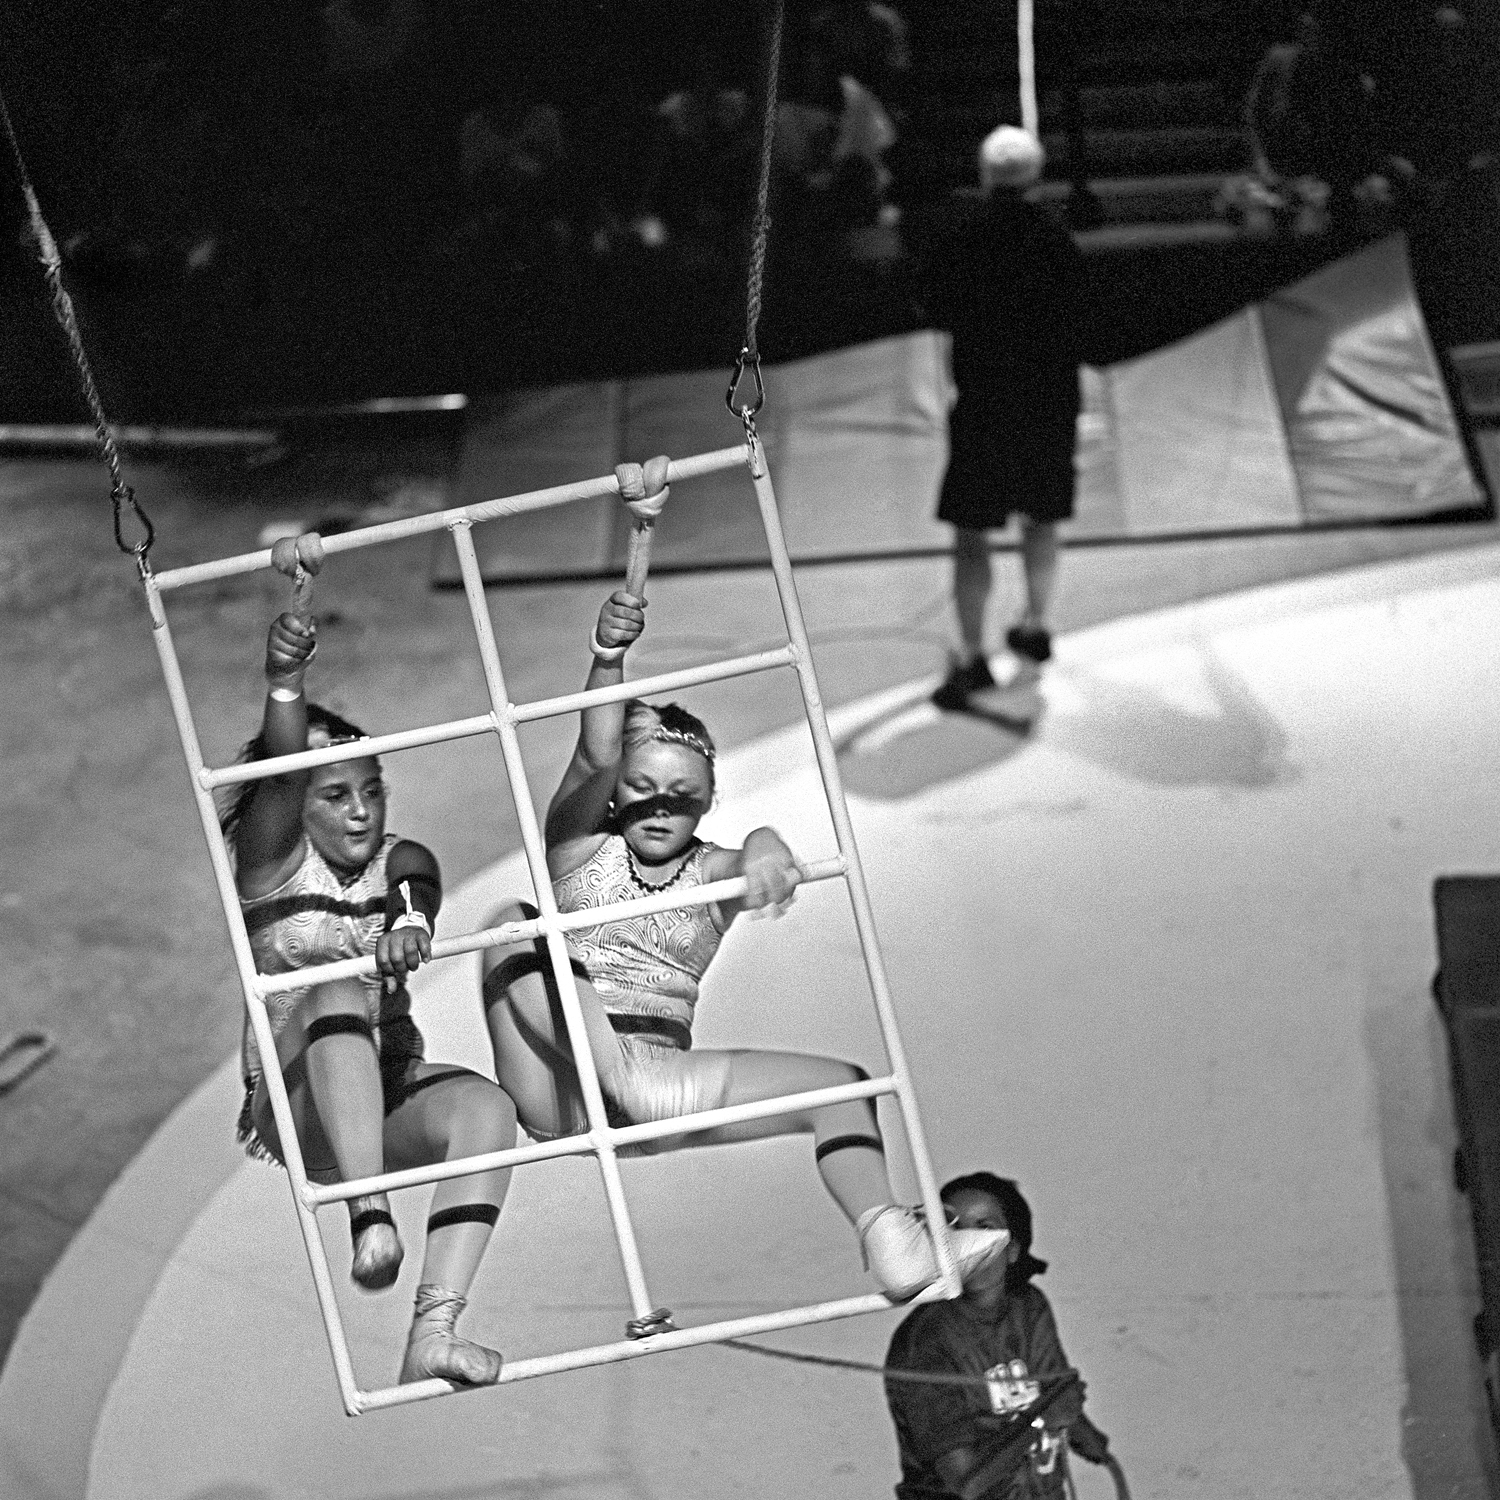 Swinging ladders is an act performed by 8-10 year olds. Spotters control the speed of the swing and keep close watch over the young performers.